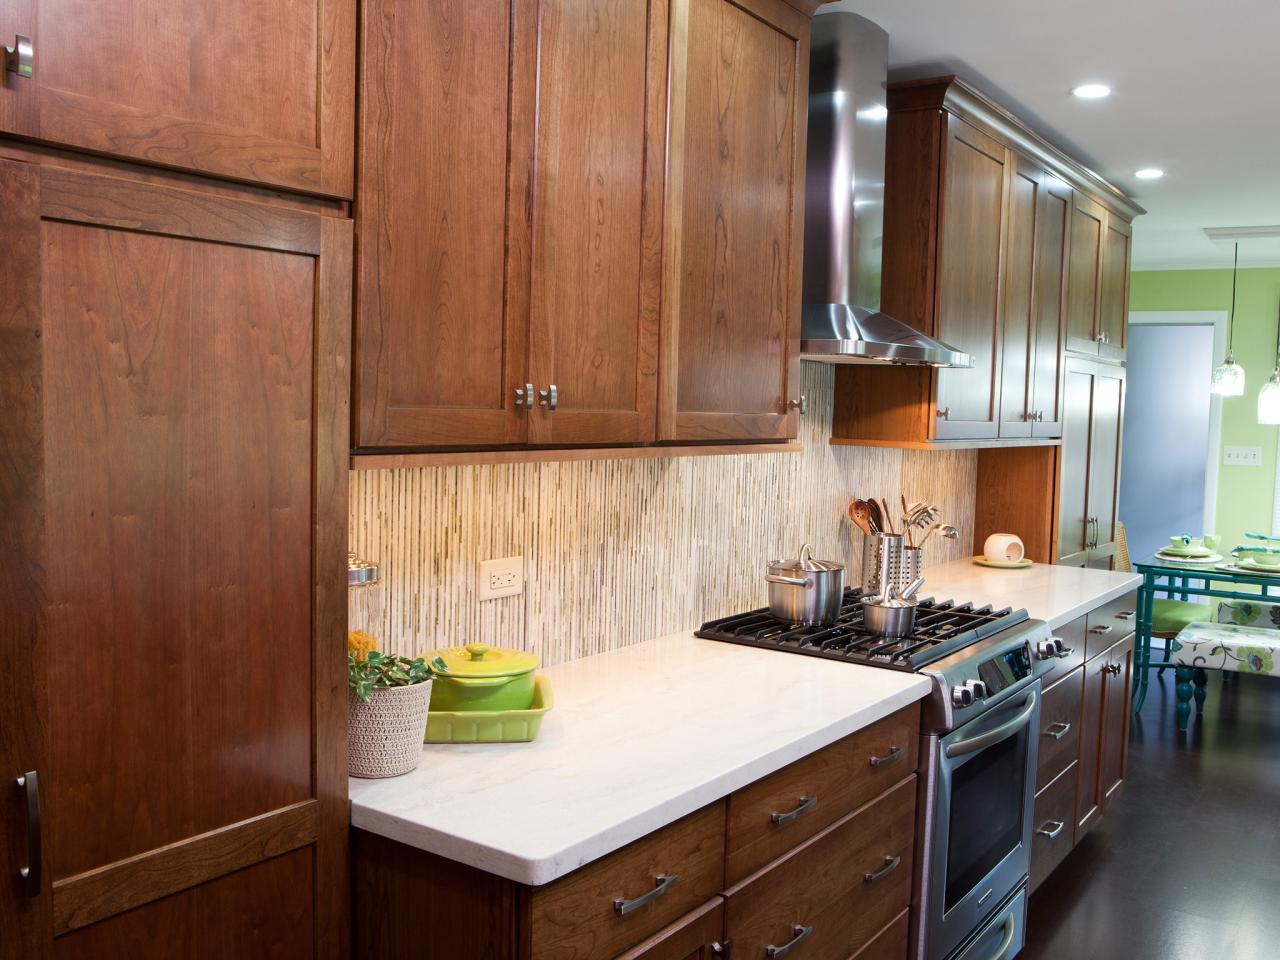 Kitchen cabinet door ideas and options hgtv pictures hgtv for Kitchen cabinet options design